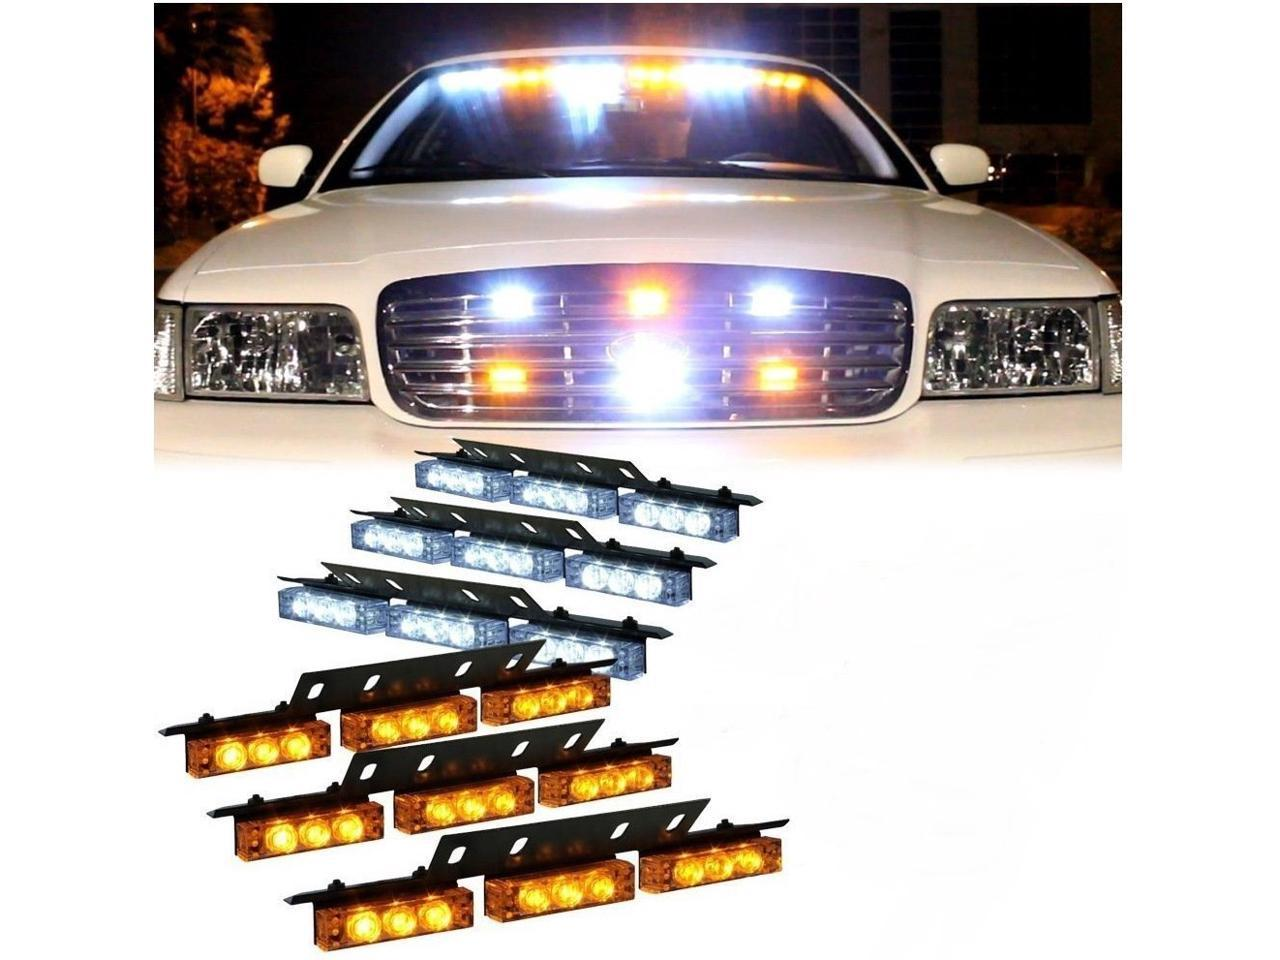 18 X LED Emergency Vehicle Strobe Lights for Front Grille Deck Warning Light 18 LED, Amber